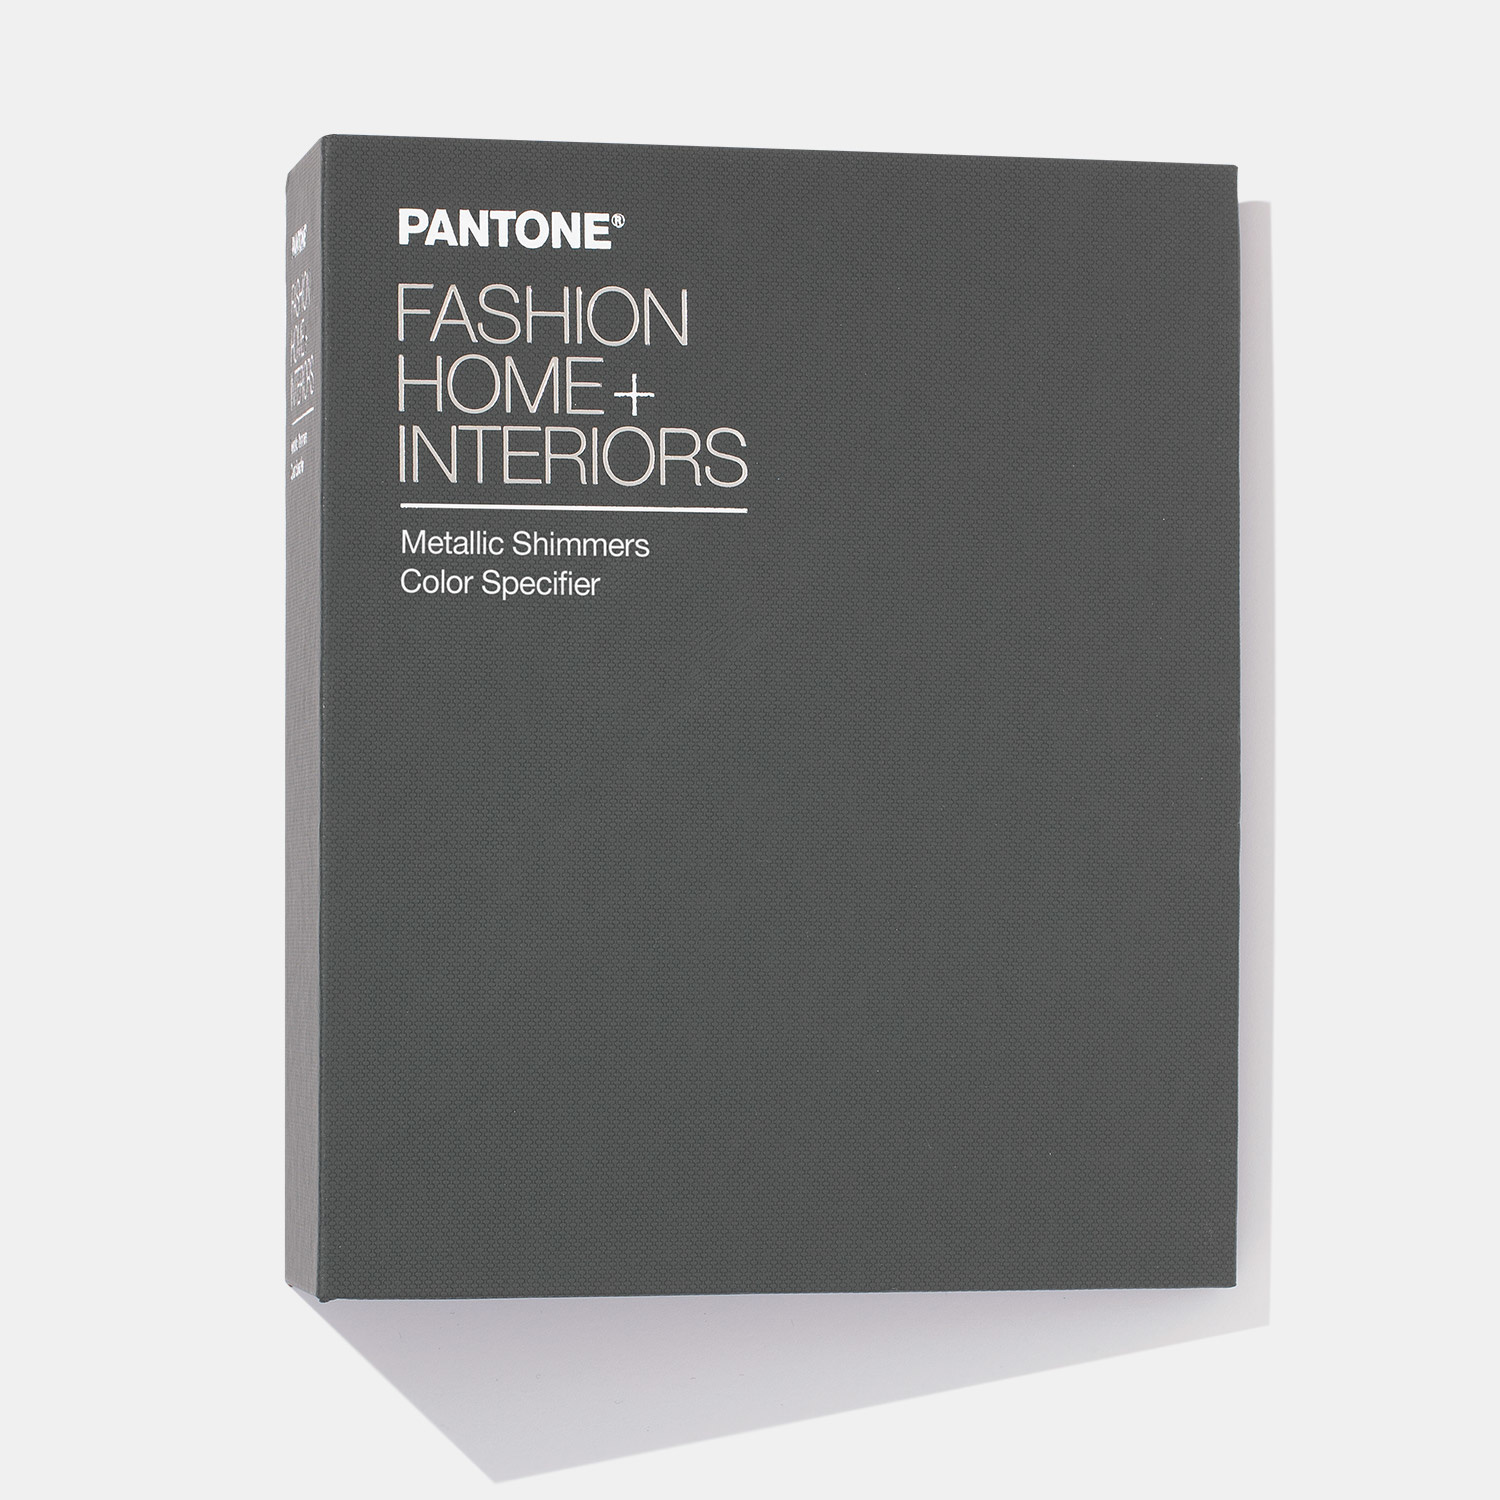 PANTONE Pantone FHI Metallic Shimmers Color Specifier